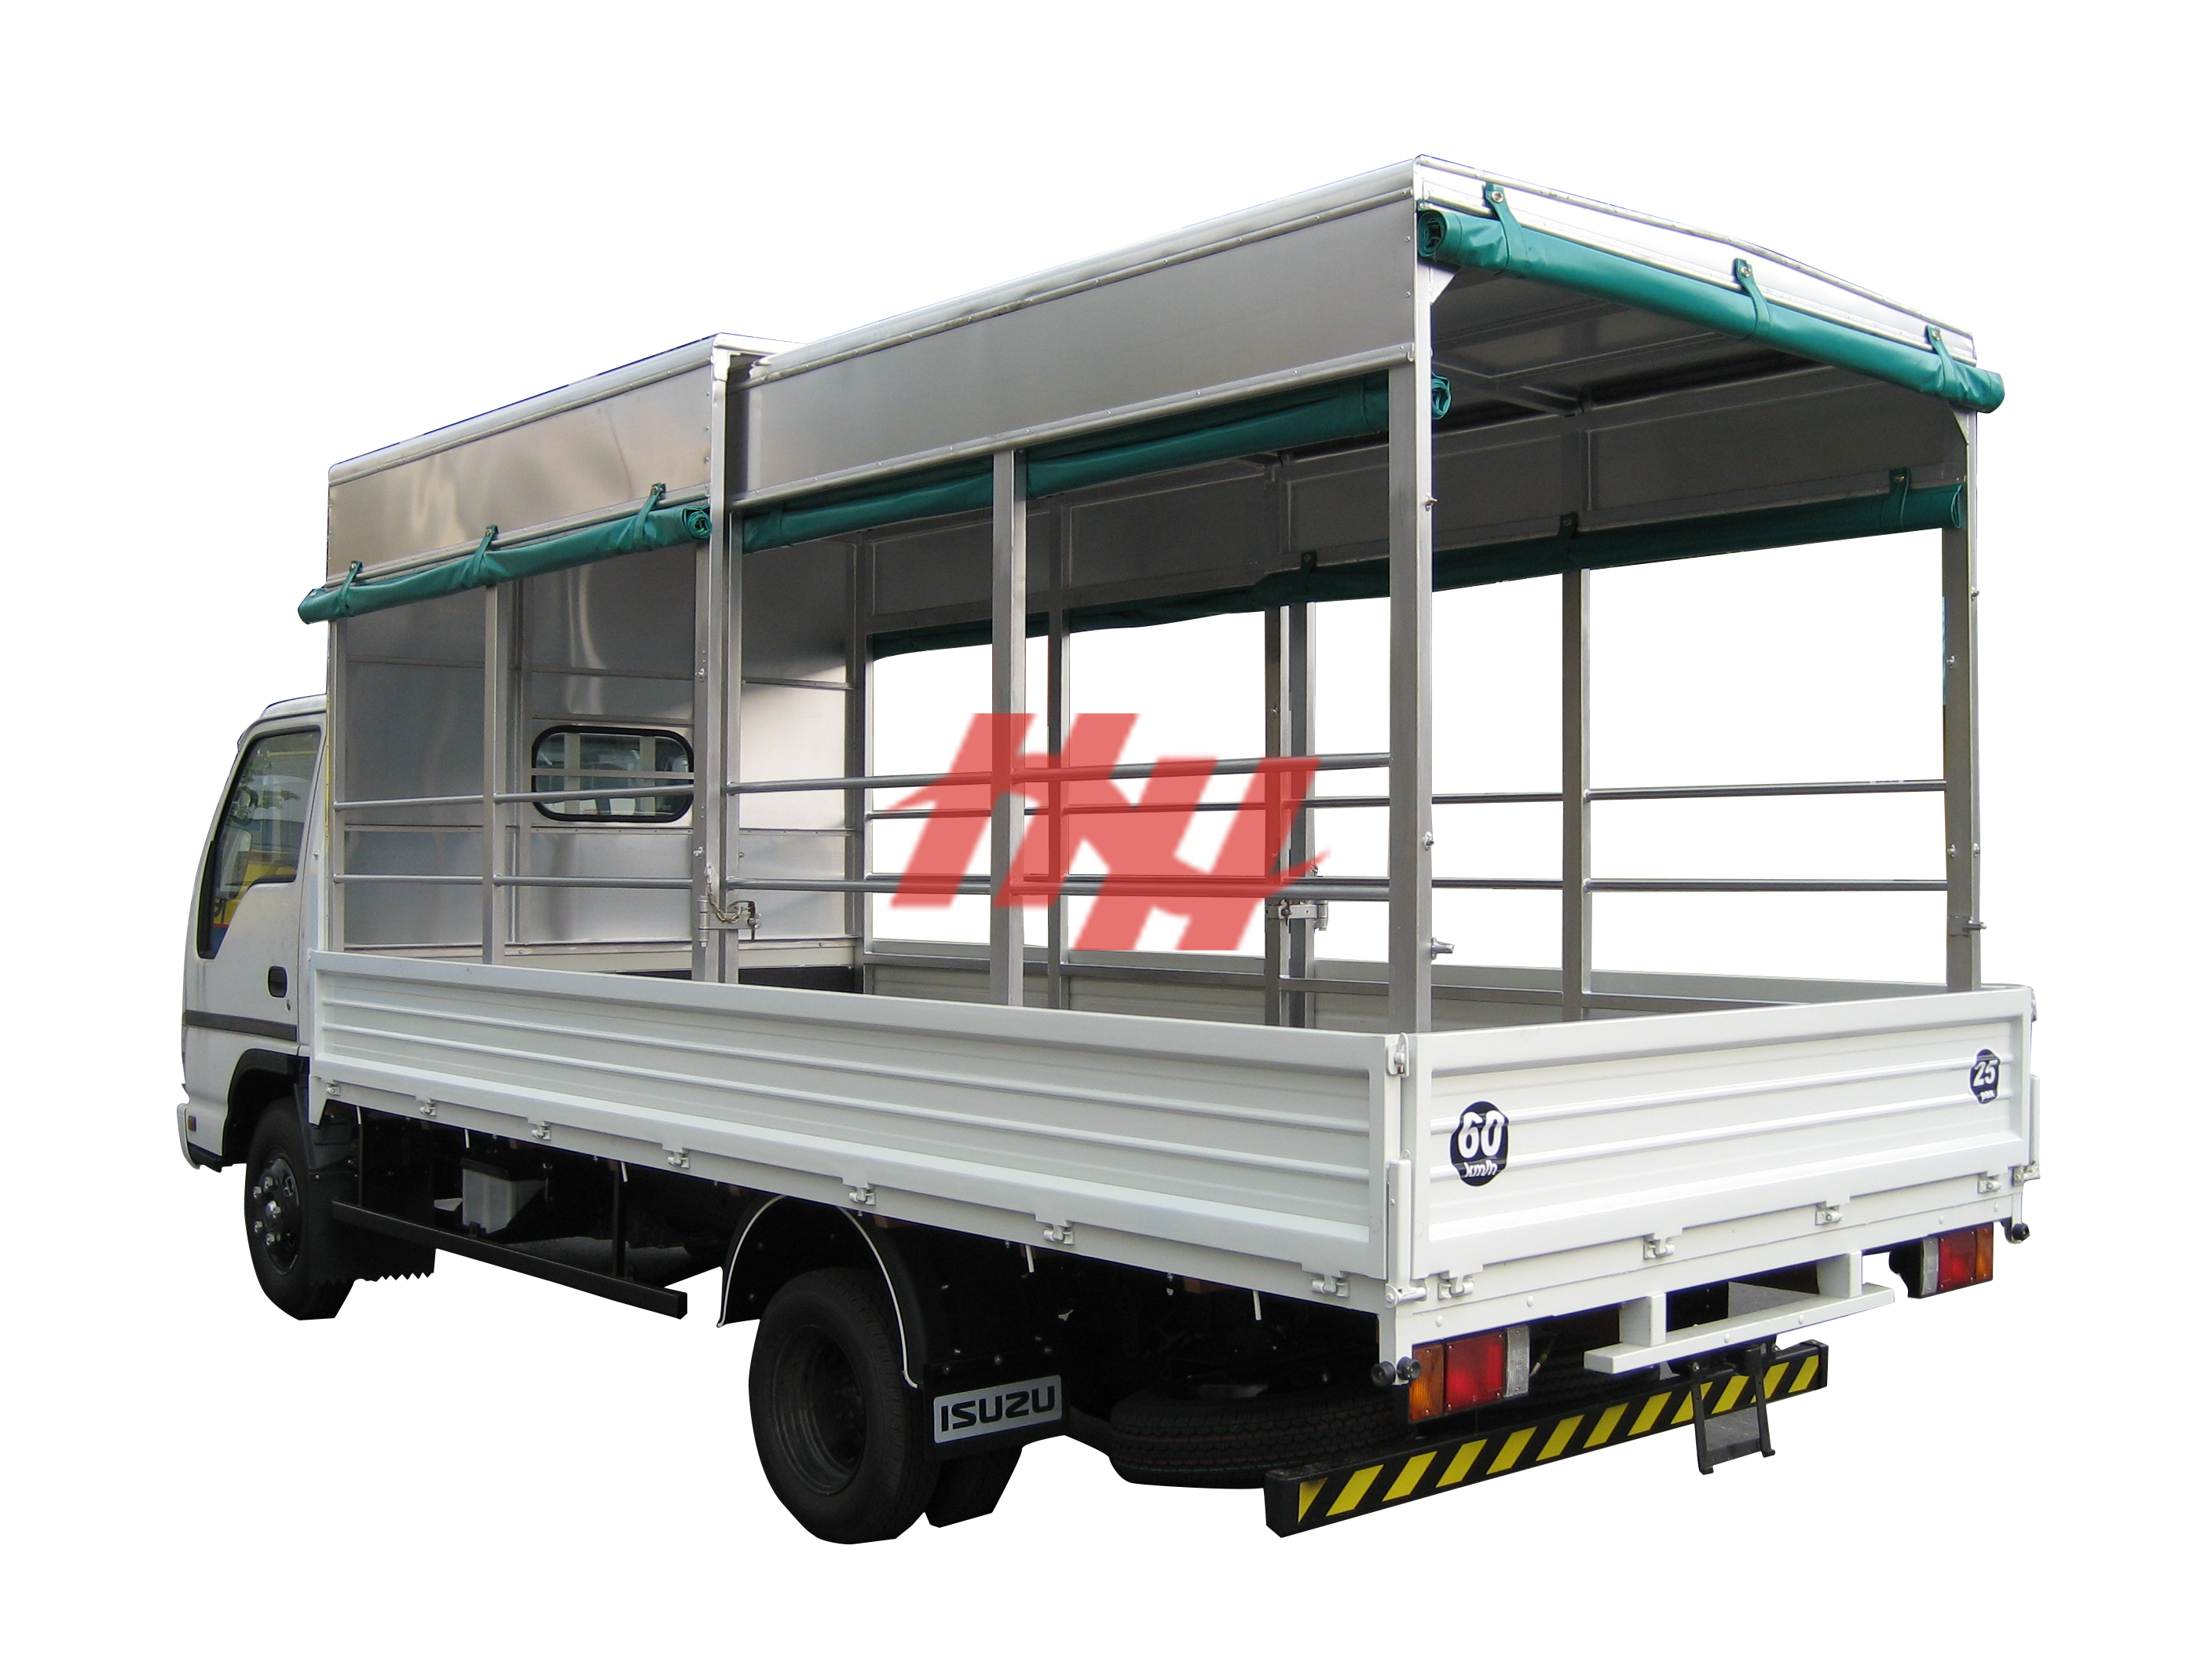 1steel body  high roof retractable canopy with roll down canvas and side pannel edit